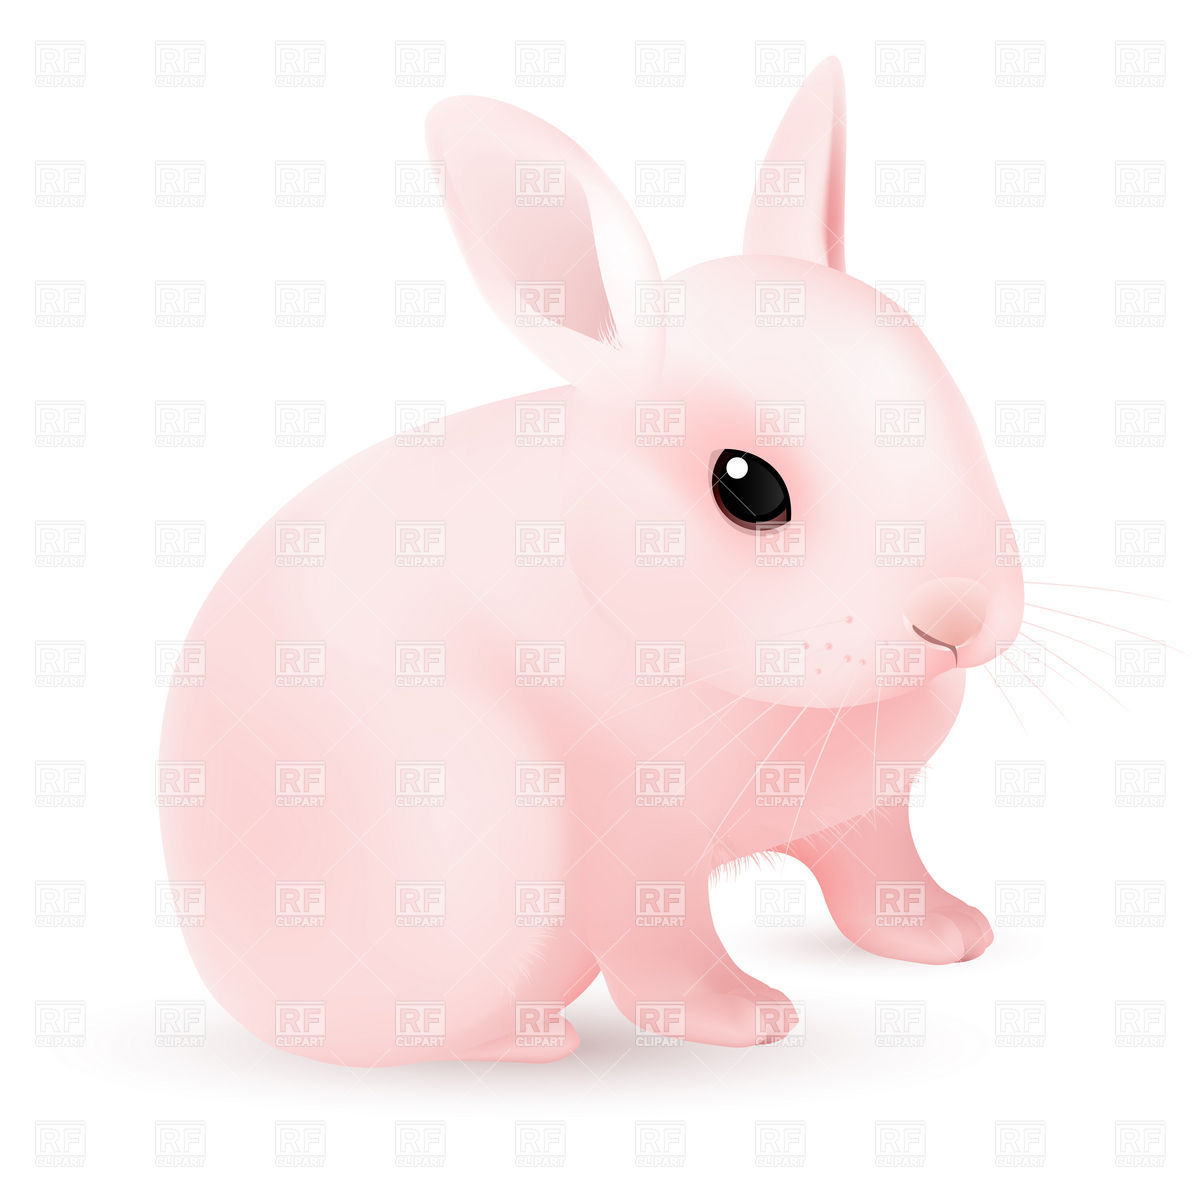 1200x1200 Pink Easter Bunny Vector Image Vector Artwork Of Plants And